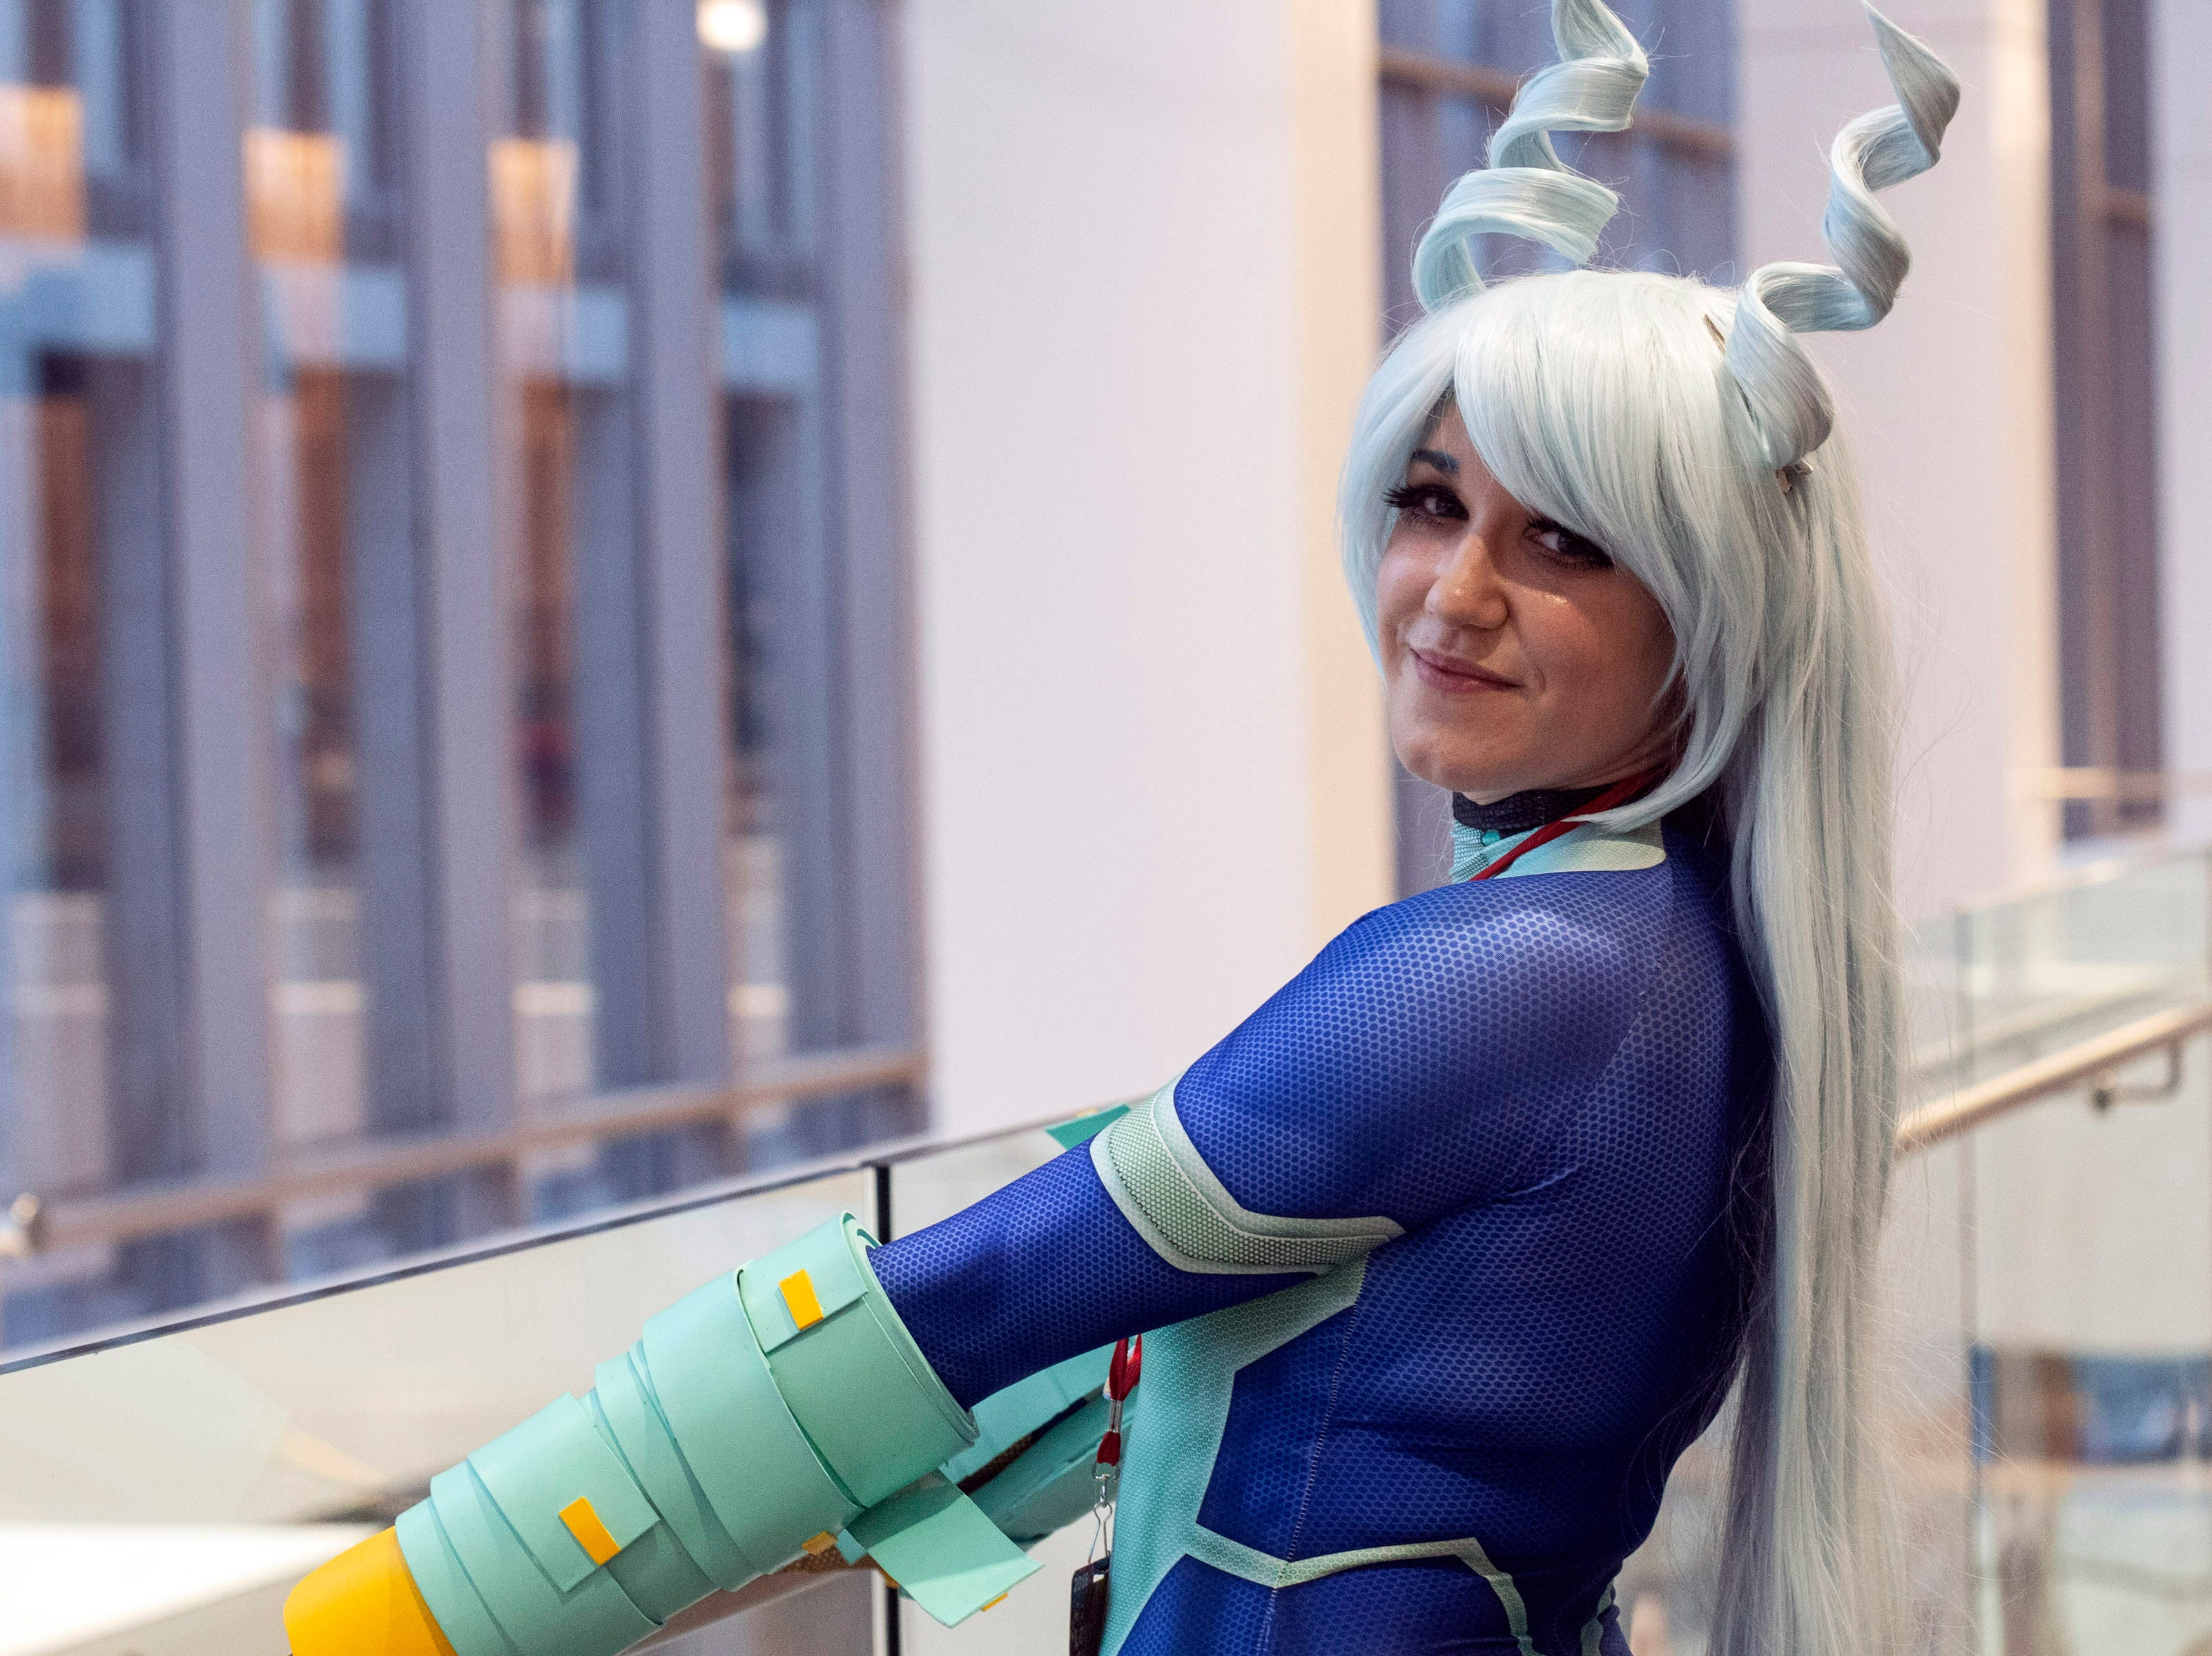 Amanda Fitzgerald of New Albany dressed as her cosplay character Nejire Hadou for the Louisville SuperCon. 12/1/18